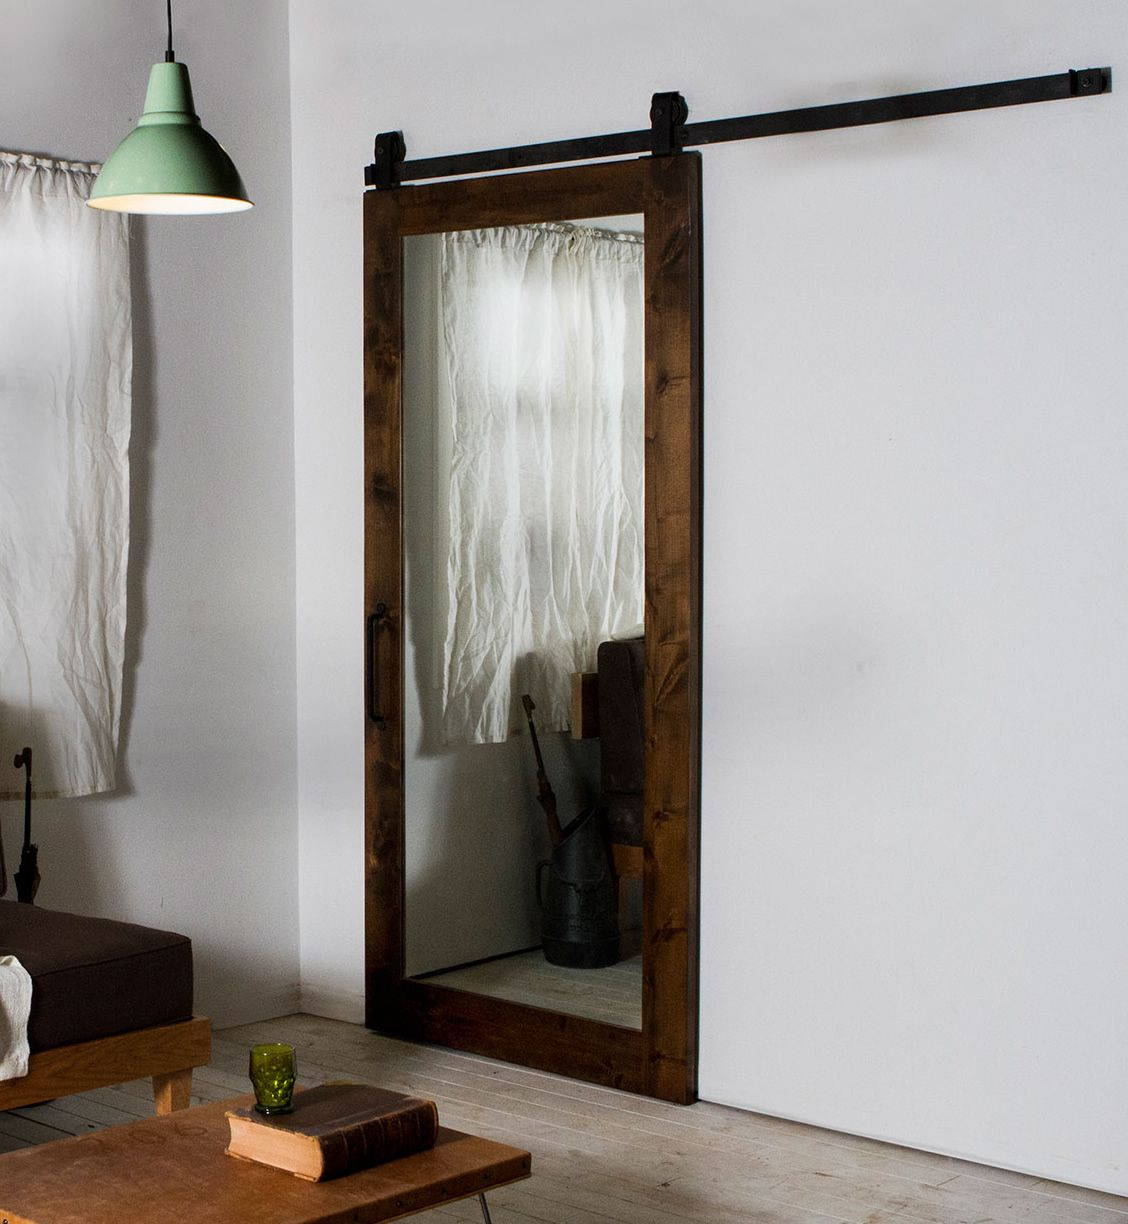 Le Meilleur How To Build And Decorate With Rustic Mirror Frames 2Nd Ce Mois Ci